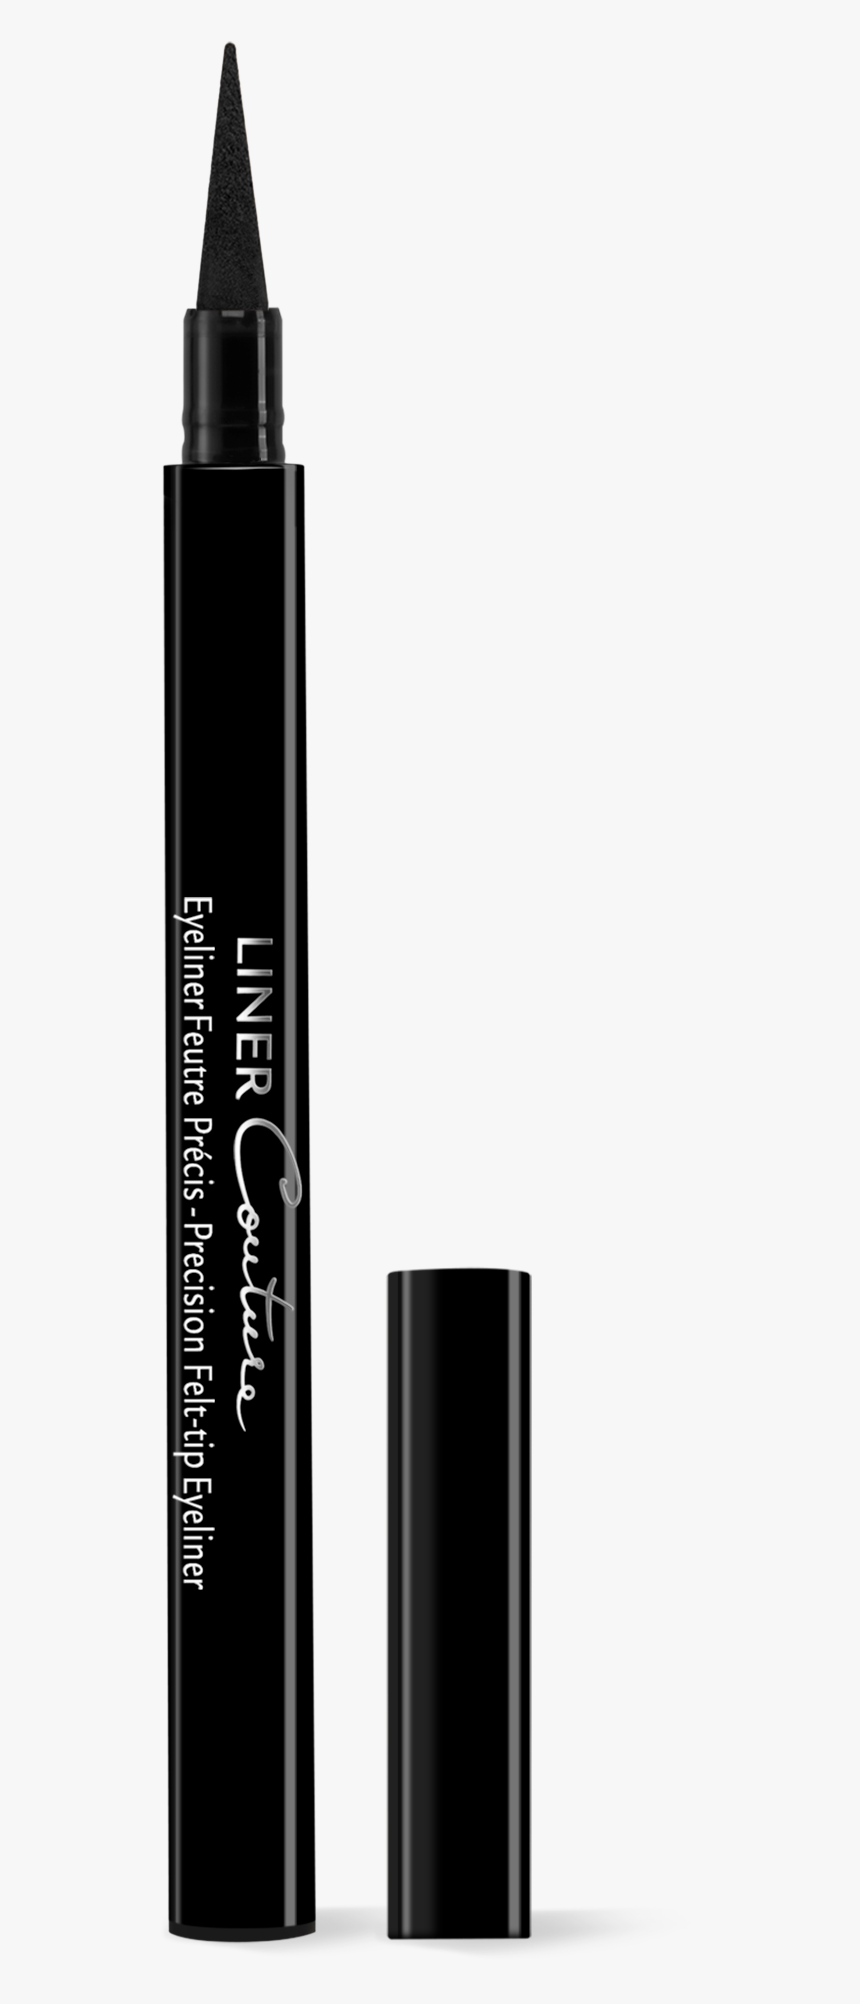 Liner Couture Givenchy - Eye Liner, HD Png Download, Free Download